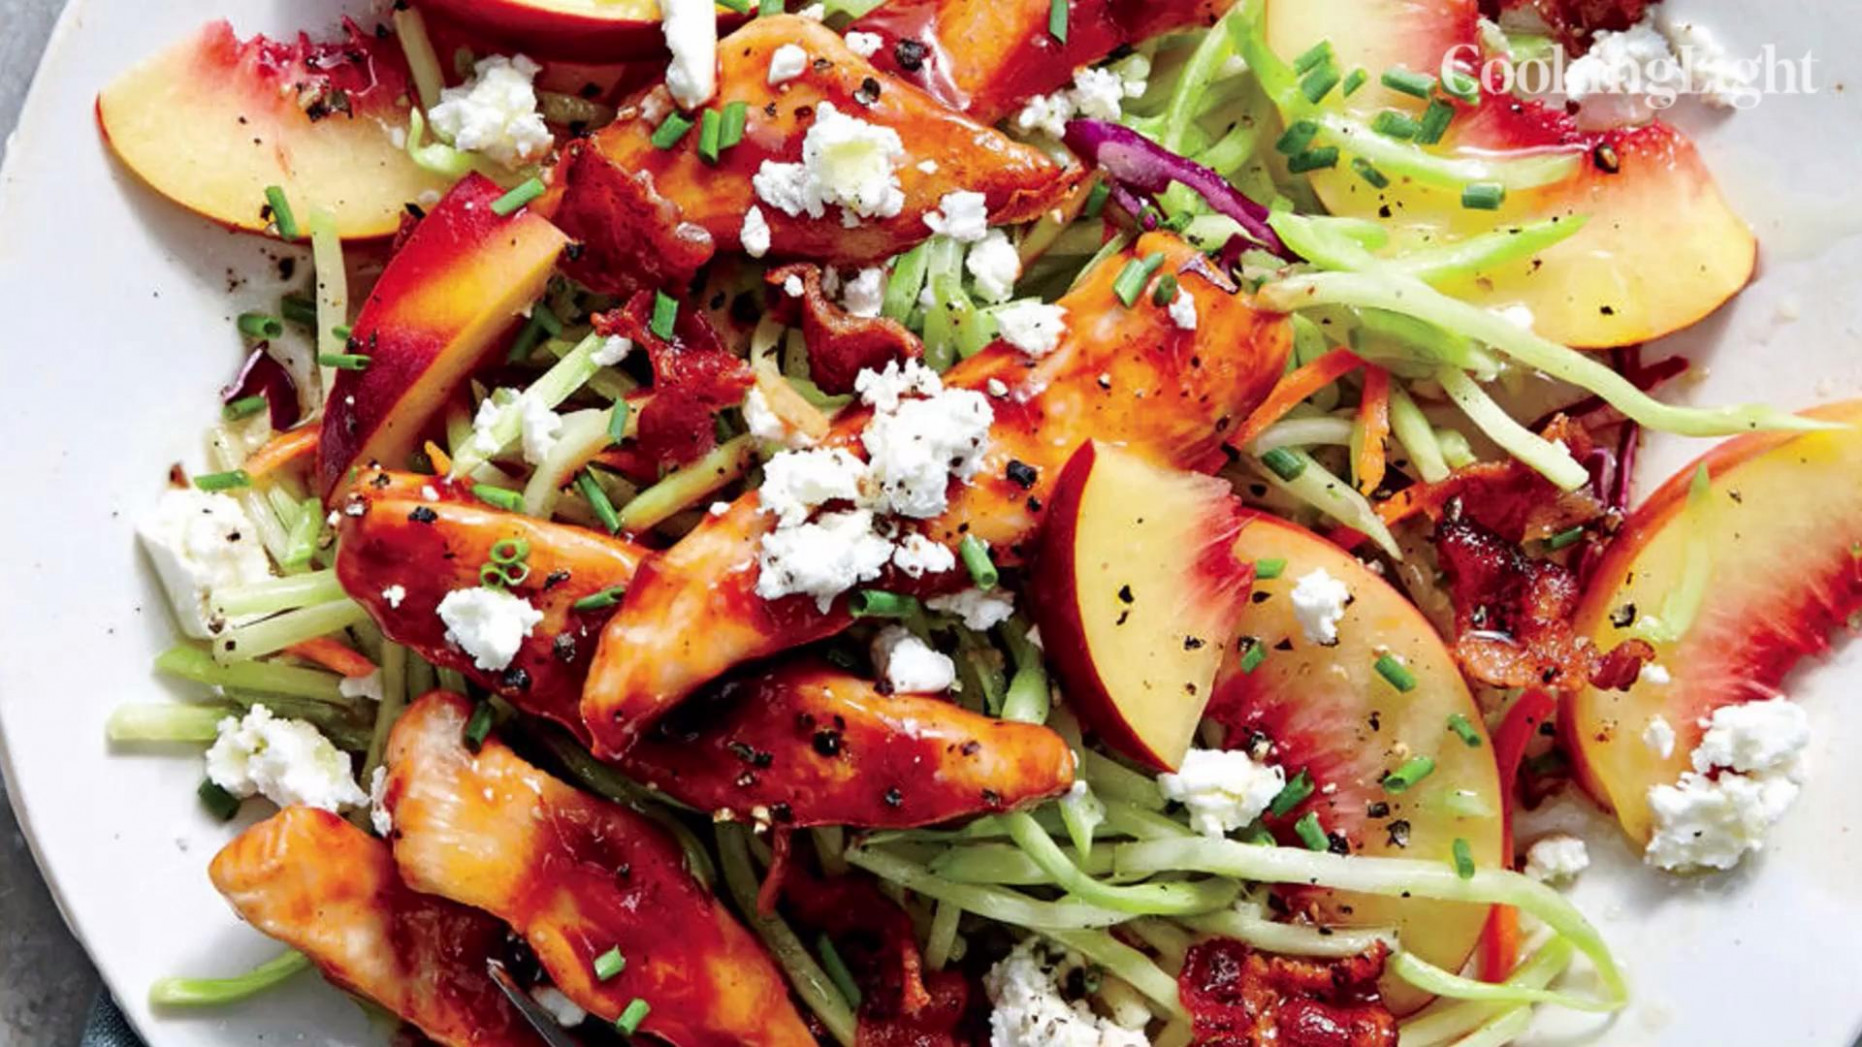 400-Calorie Dinners to Help You Lose Weight - Cooking Light - recipes dinner under 400 calories